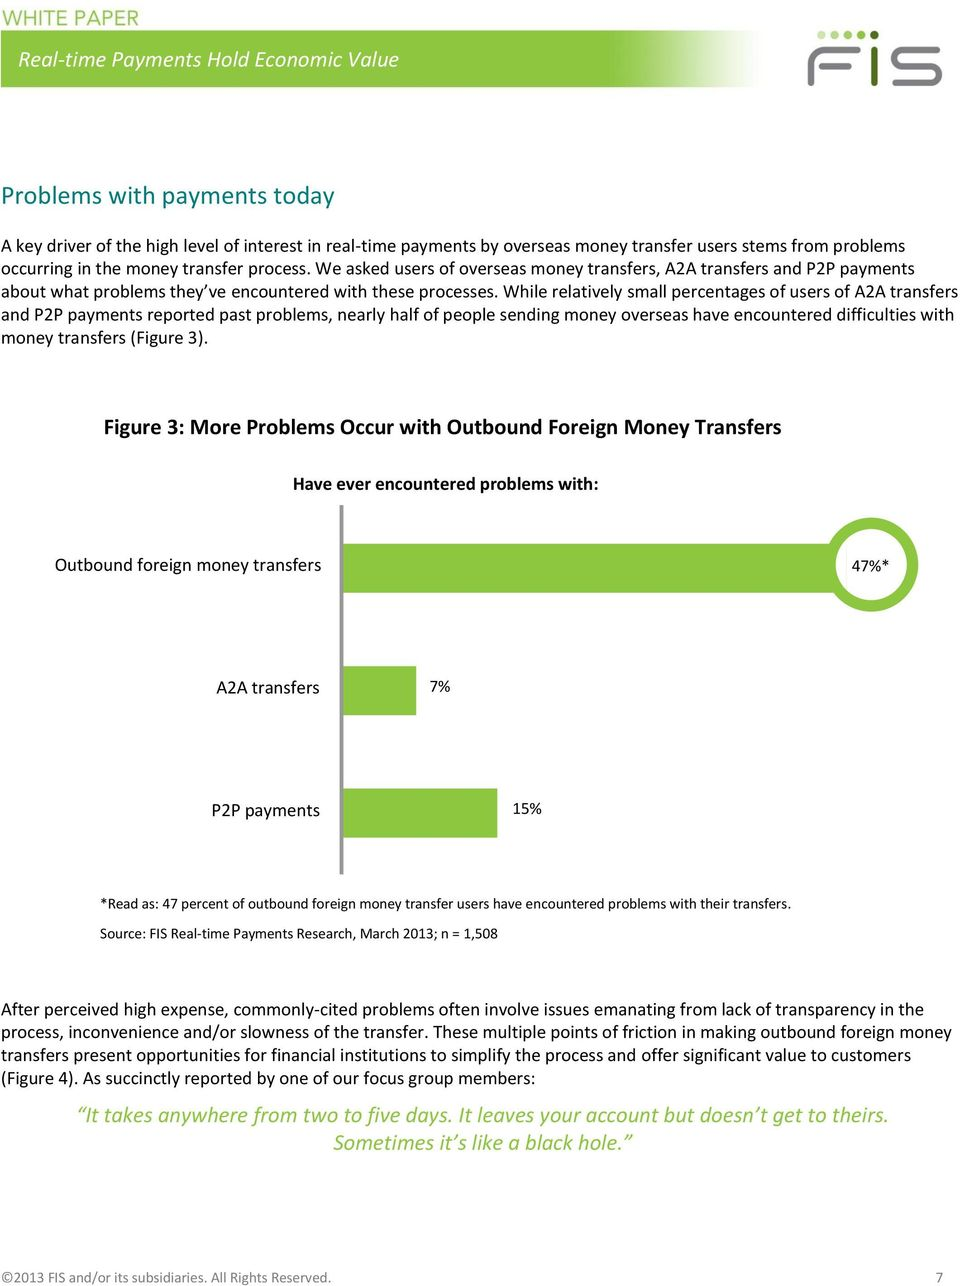 While relatively small percentages of users of A2A transfers and P2P payments reported past problems, nearly half of people sending money overseas have encountered difficulties with money transfers